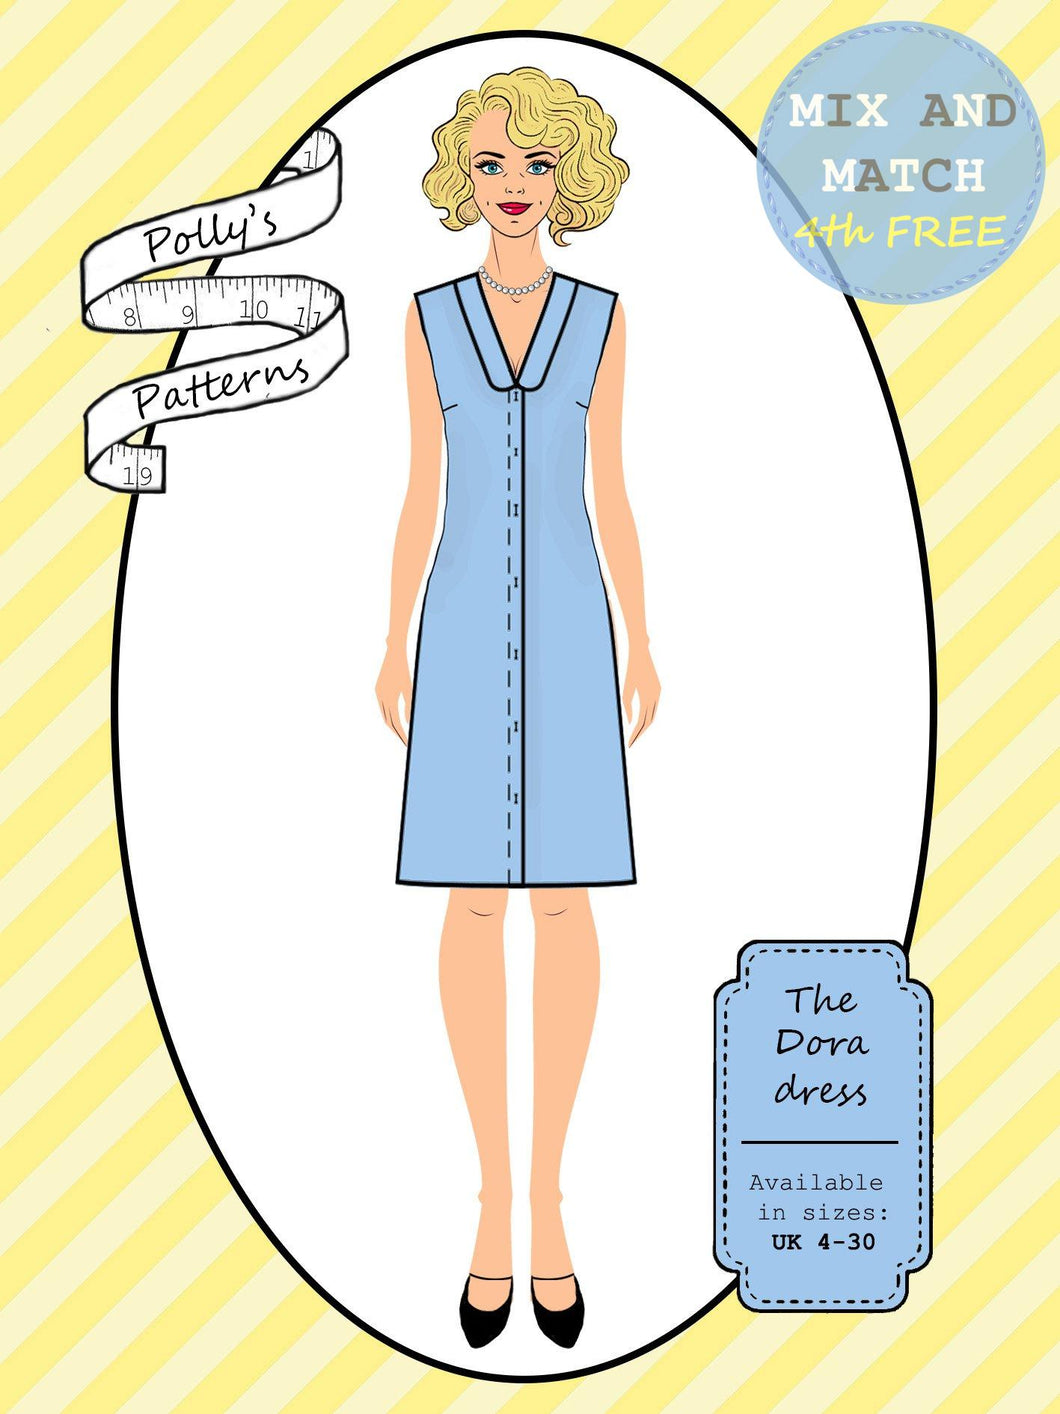 Polly's patterns - The Dora Dress - Pattern Shop